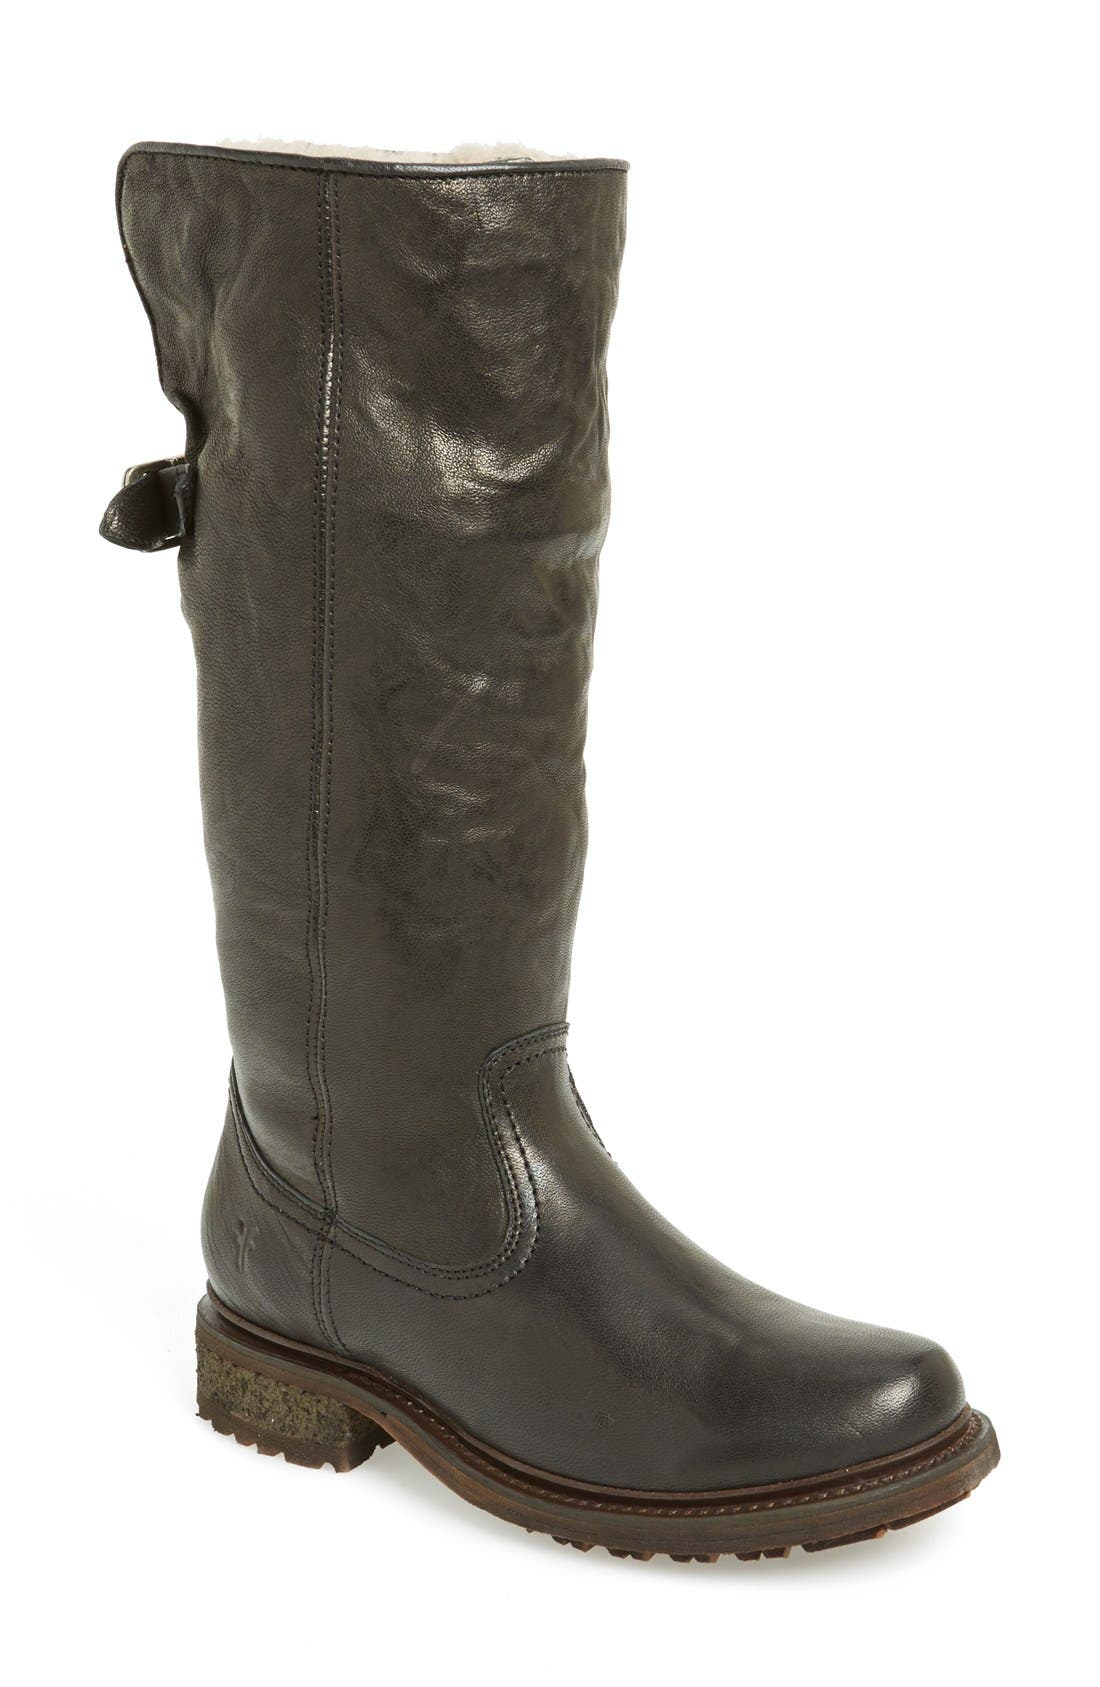 Alternate Image 1 Selected - Frye 'Valerie' Pull On Shearling Boot (Women)